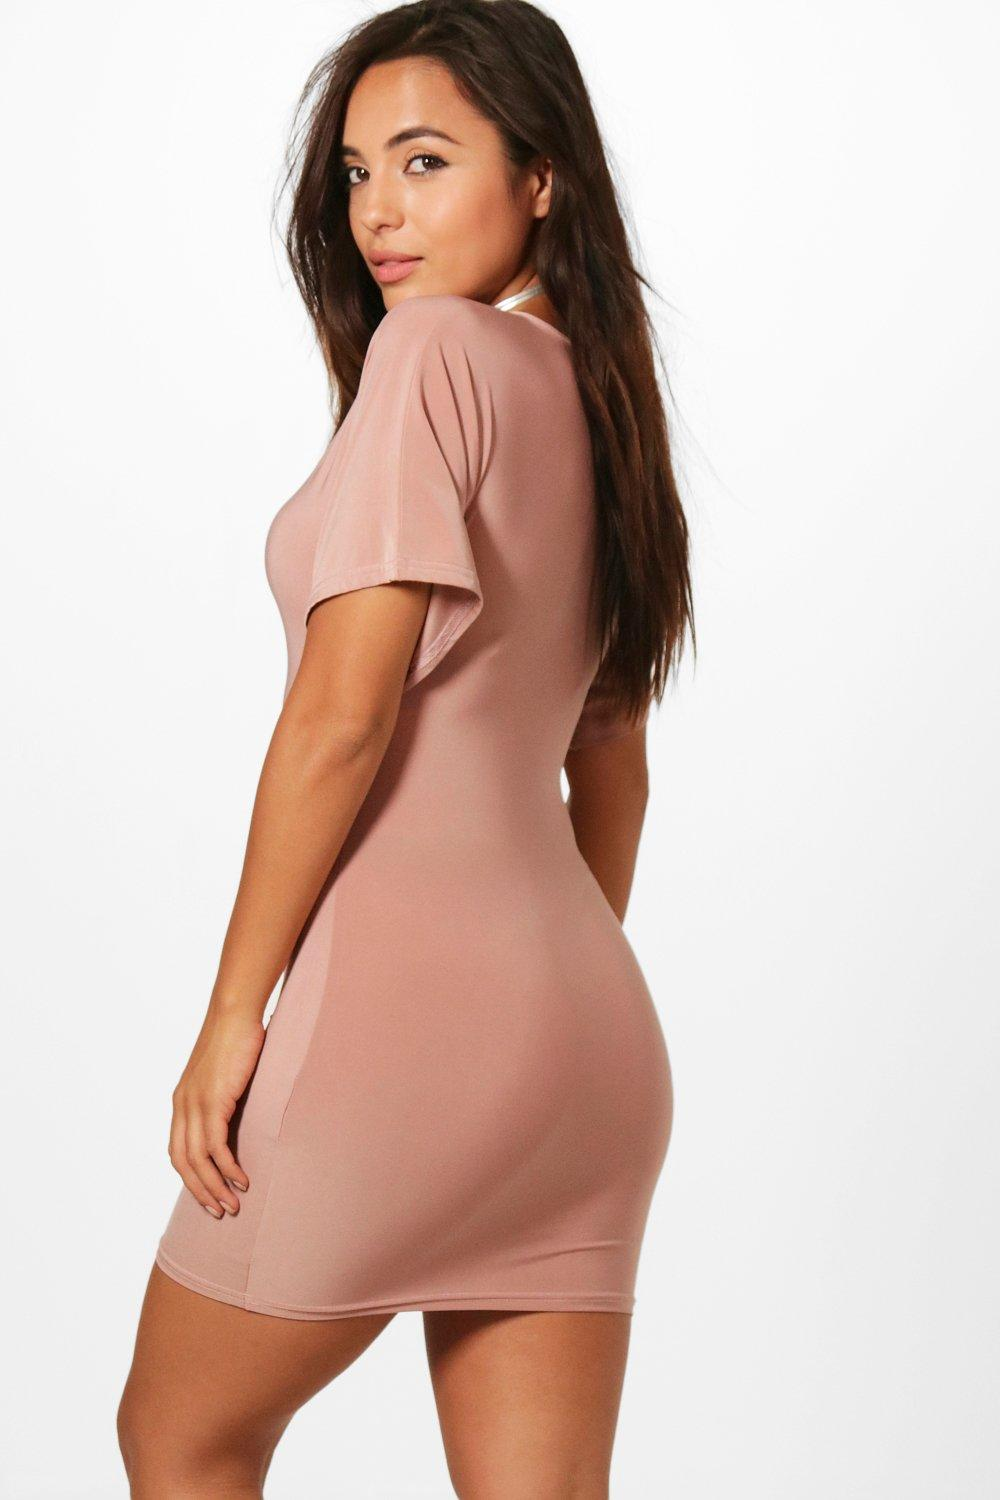 Boohoo-Petite-Demi-Ruched-Pront-Slinky-Dress-para-Mujer